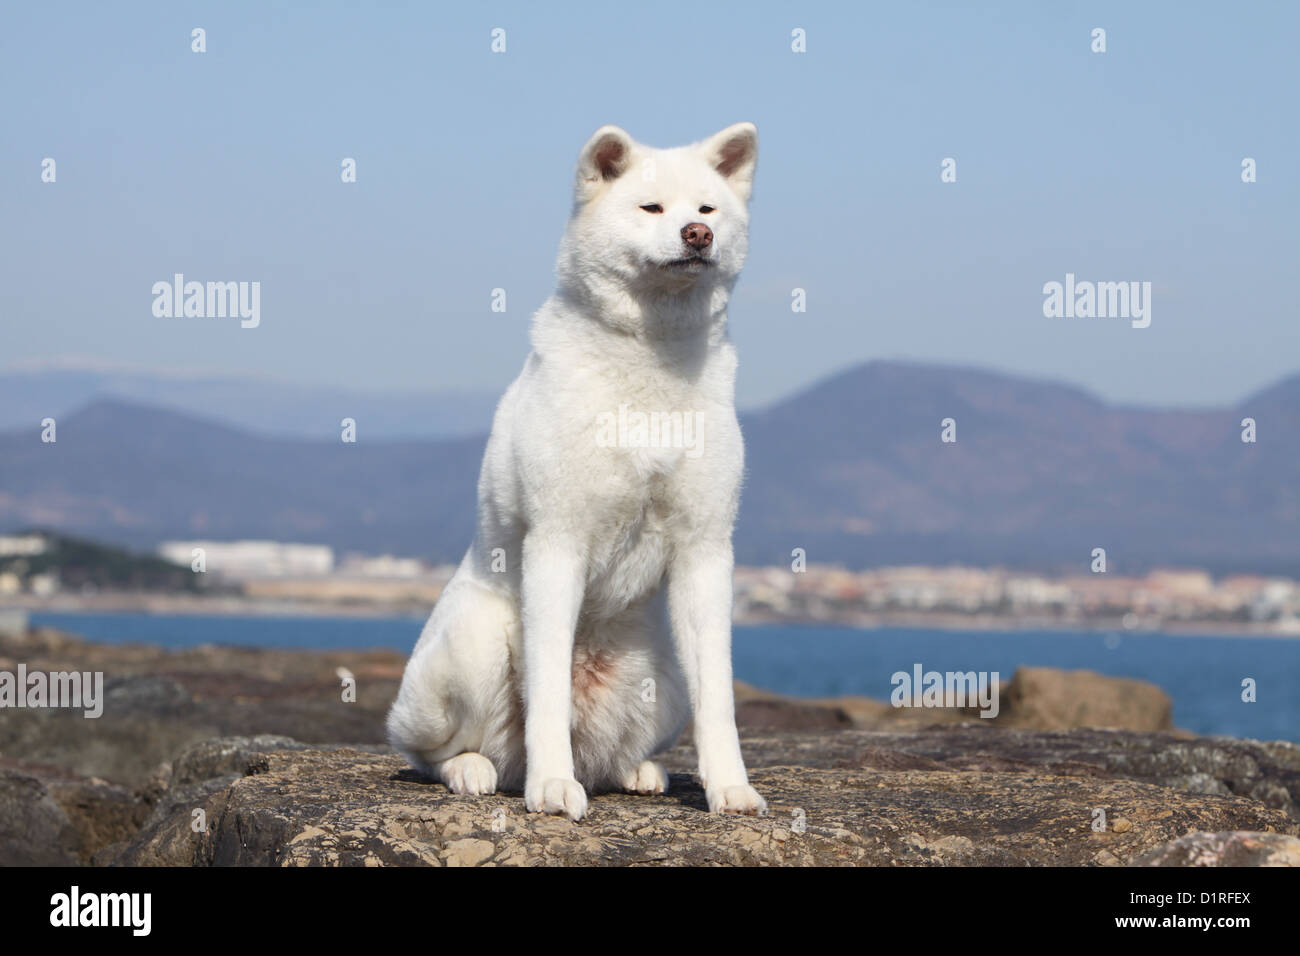 Japanese Akita Adult High Resolution Stock Photography And Images Alamy